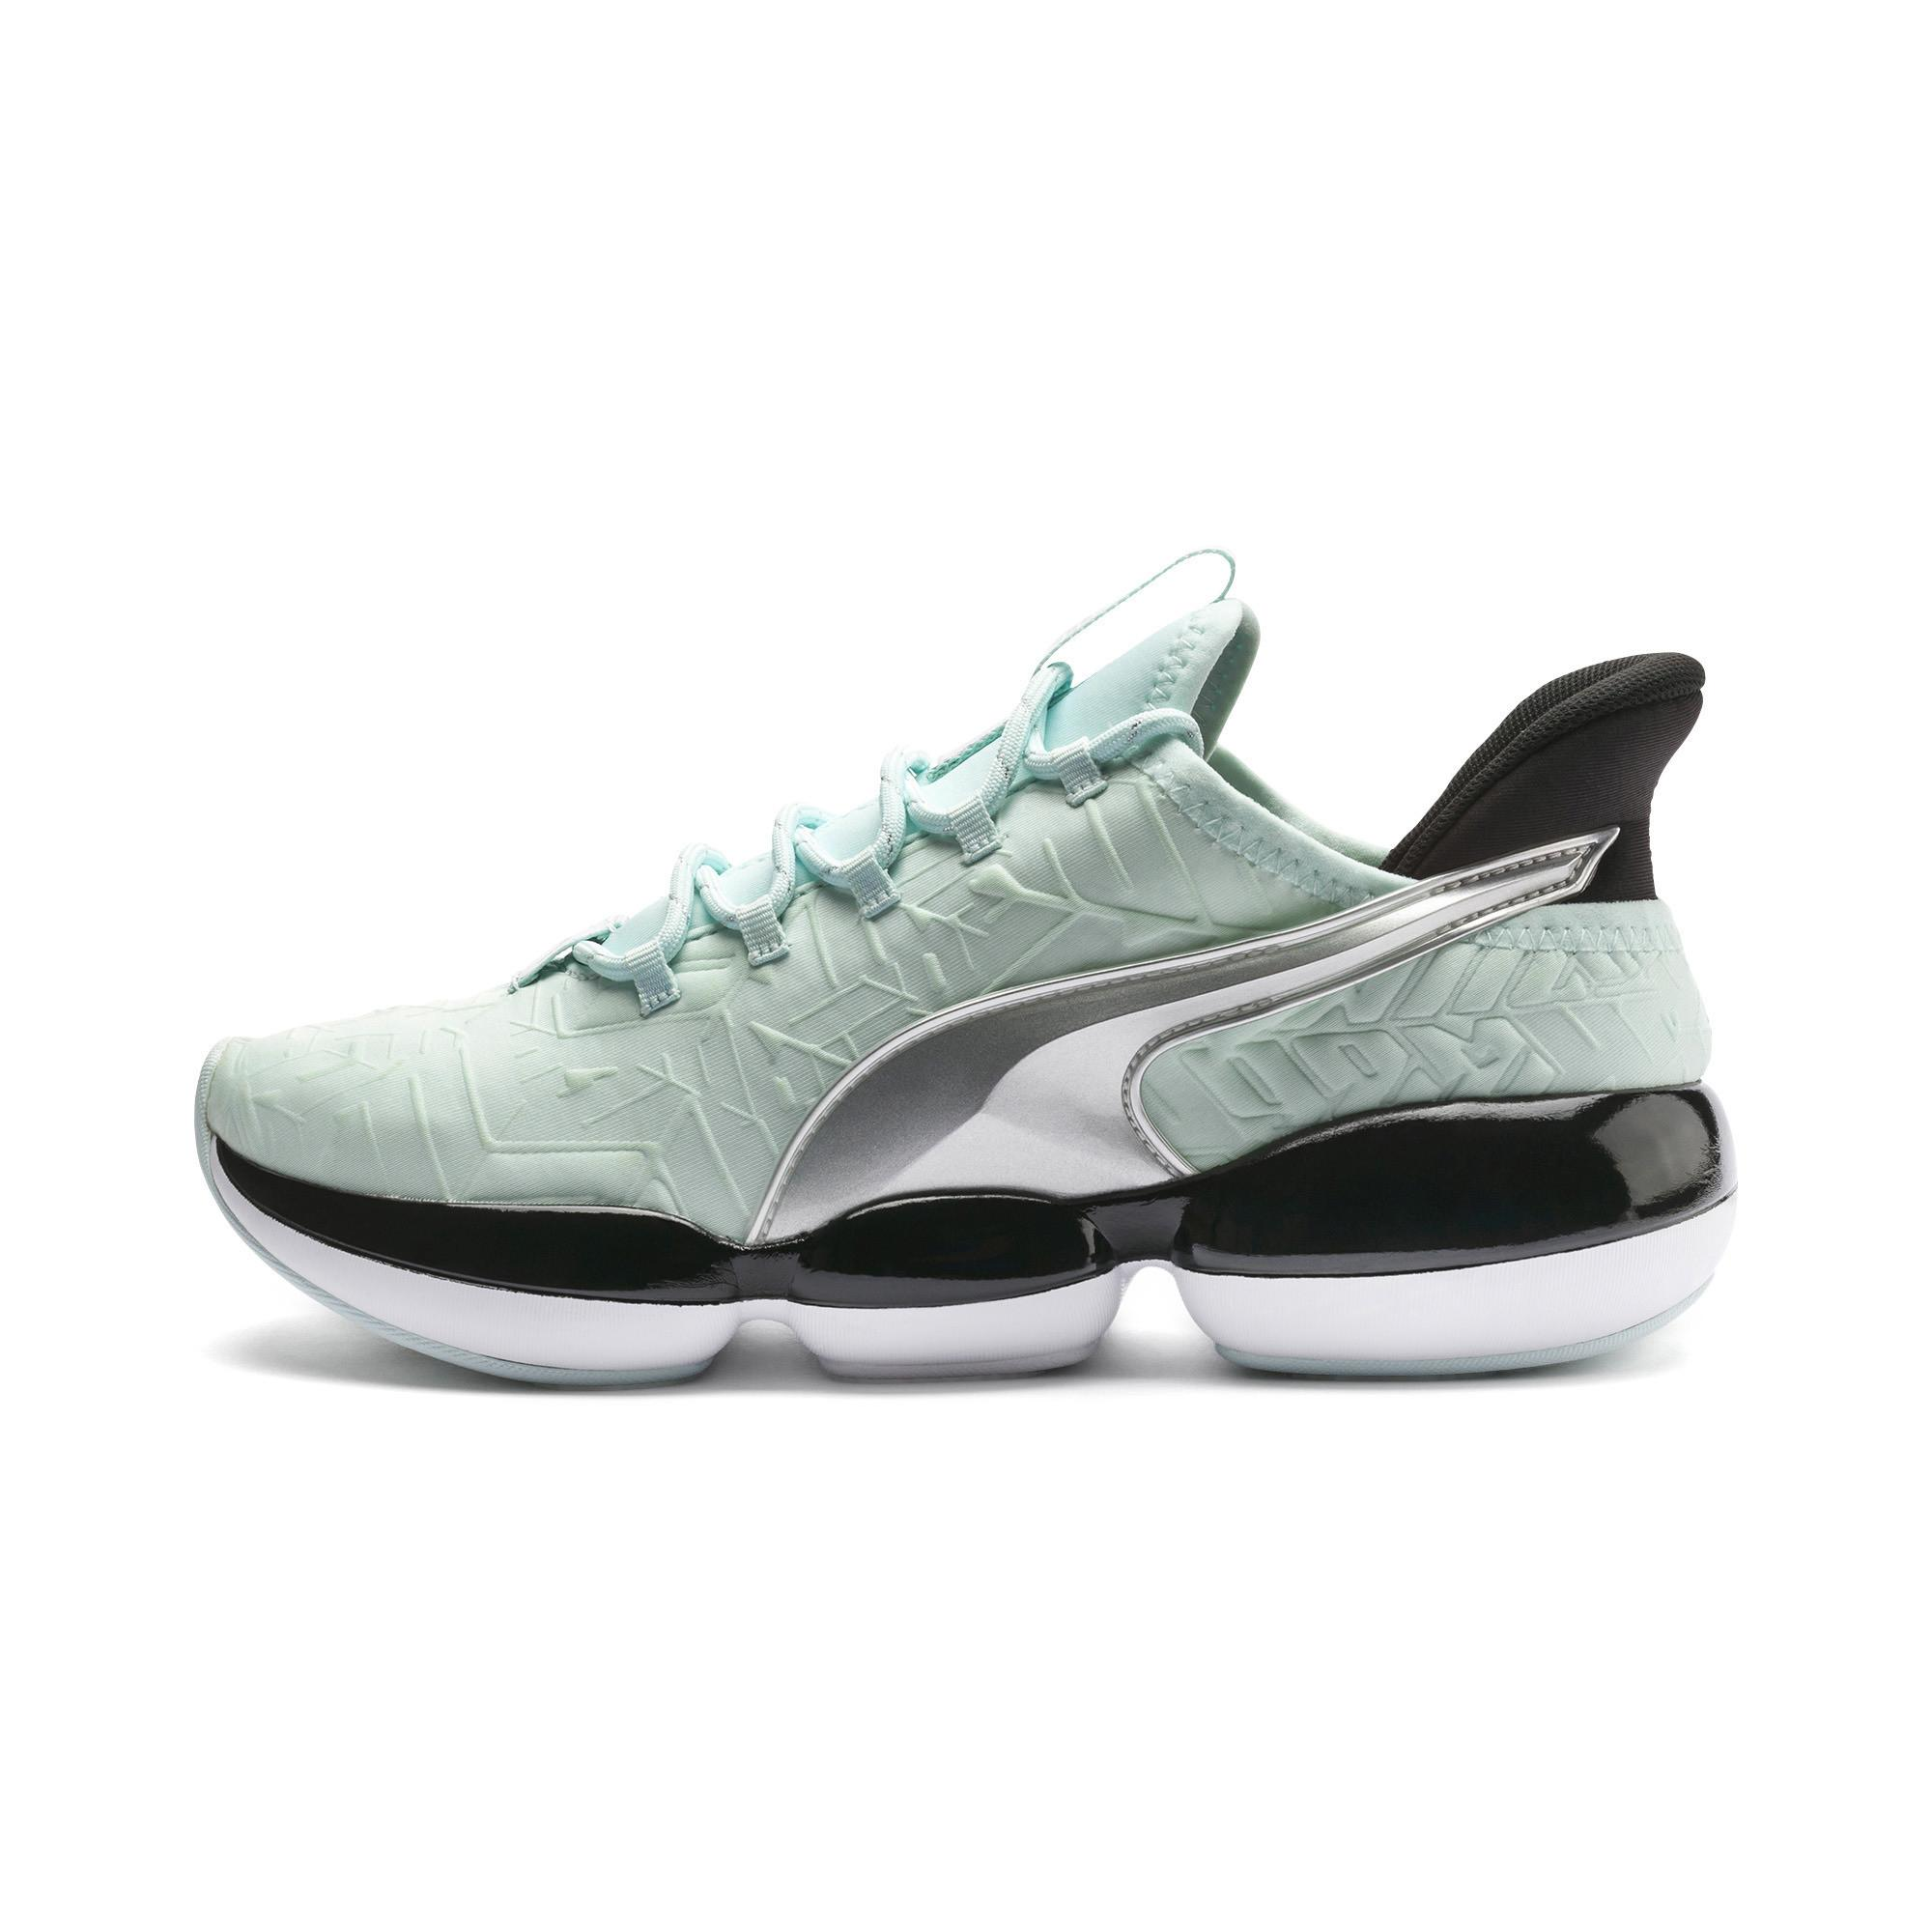 c3119bc5489 PUMA Mode Xt Trailblazer Women's Training Shoes - Lyst